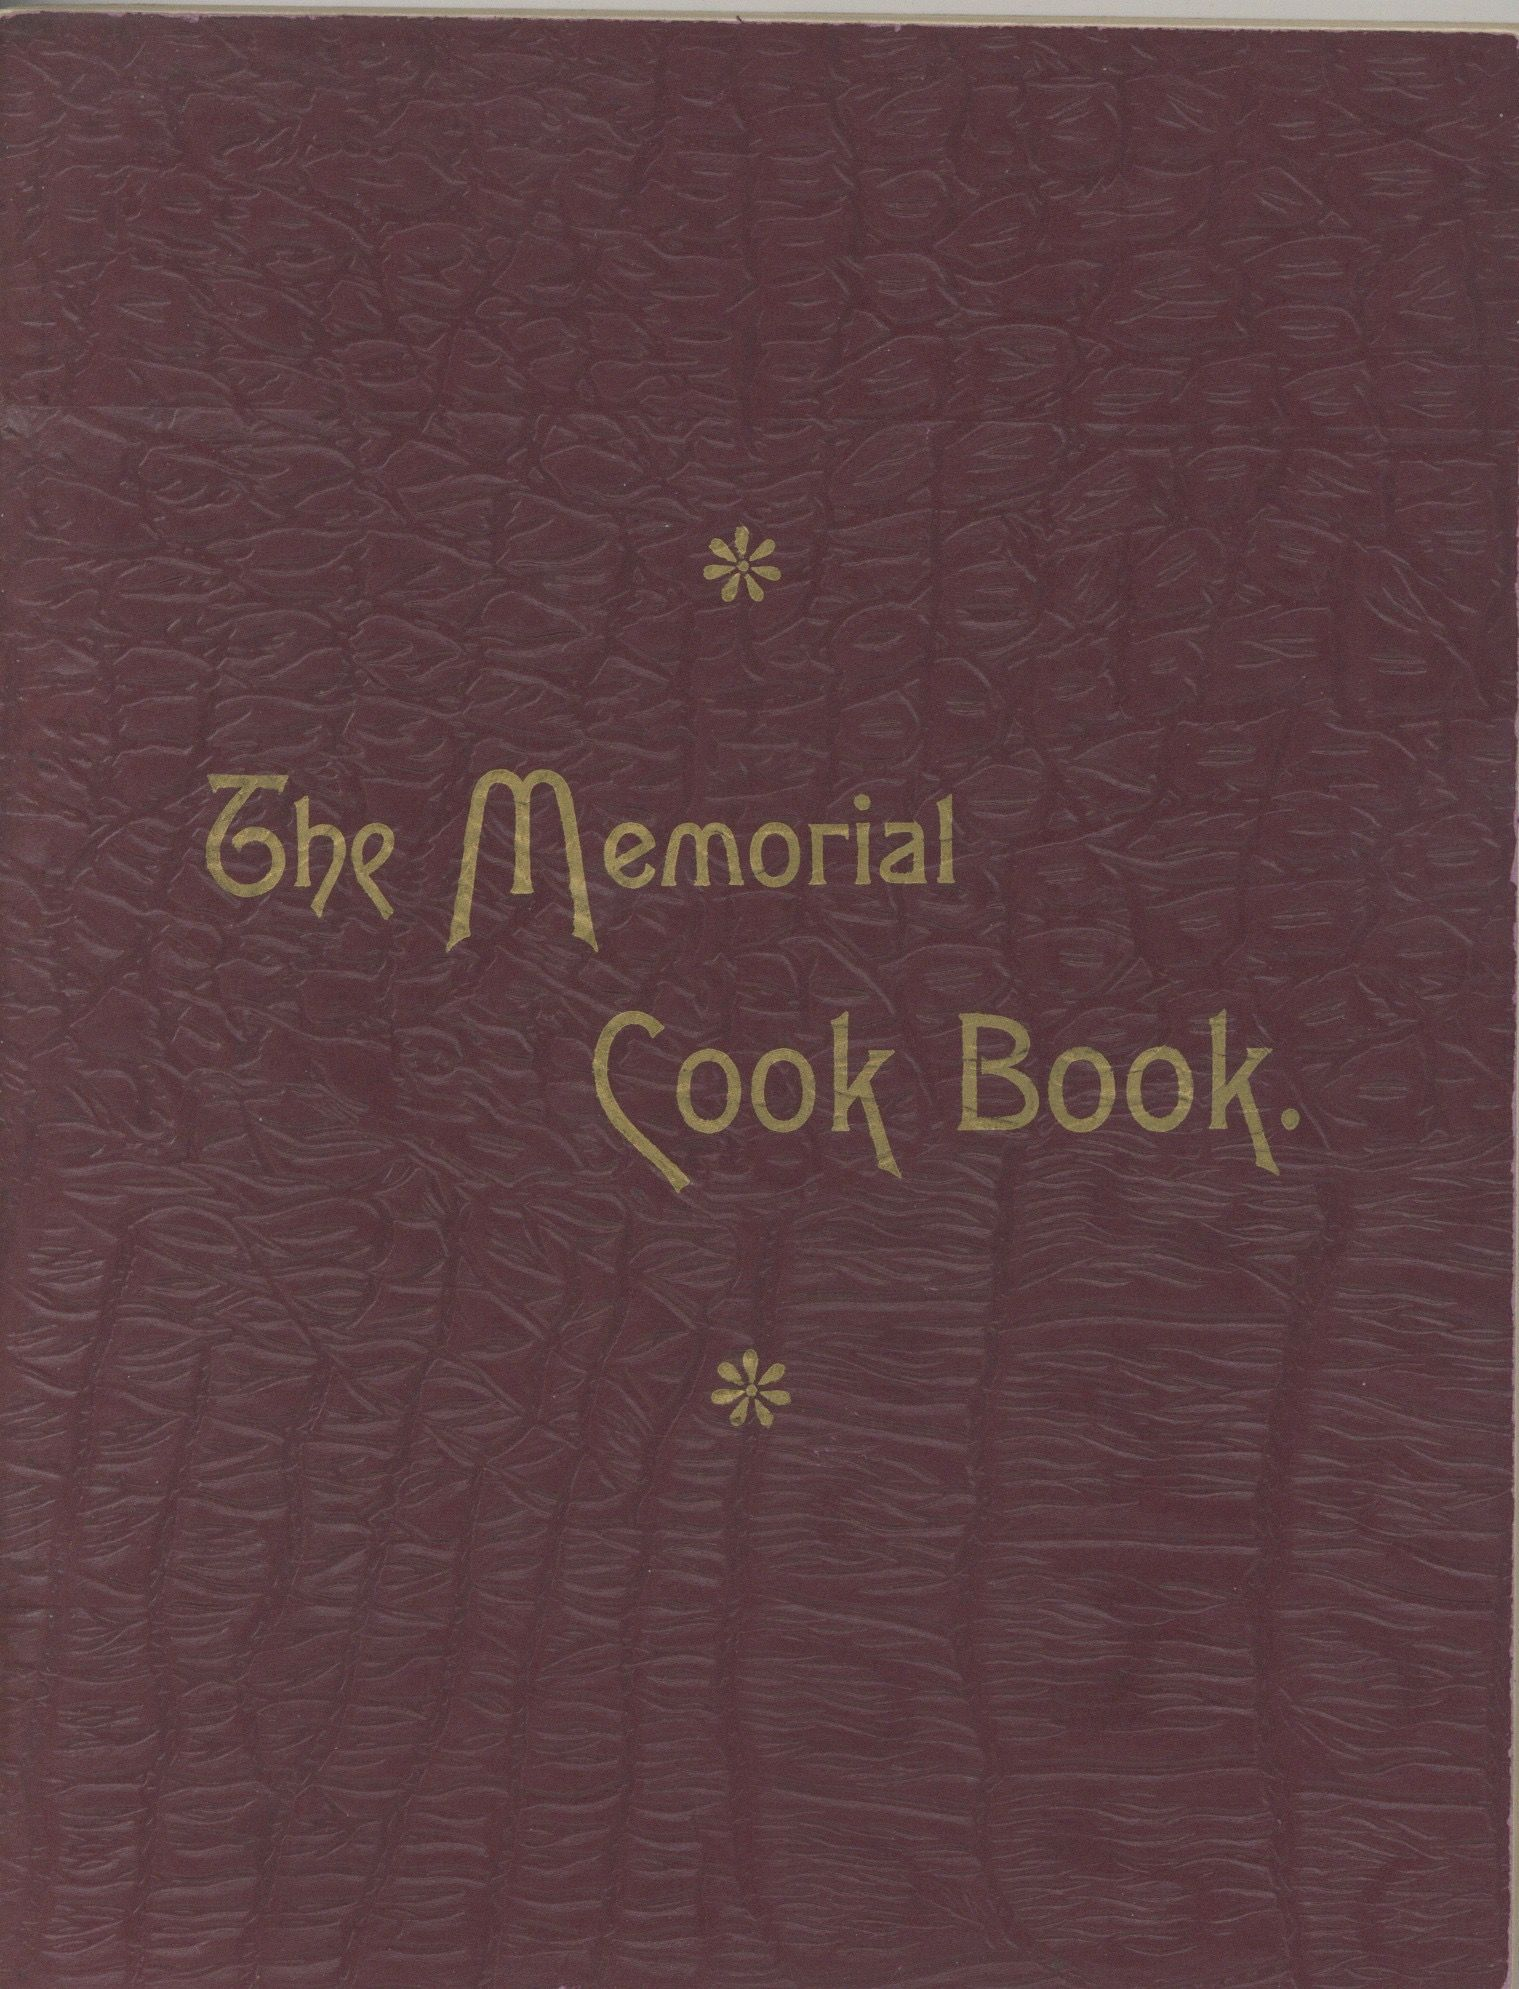 The Memorial Cook Book, Comprising Tested Receipts by the Ladies of Rockland, Mass.